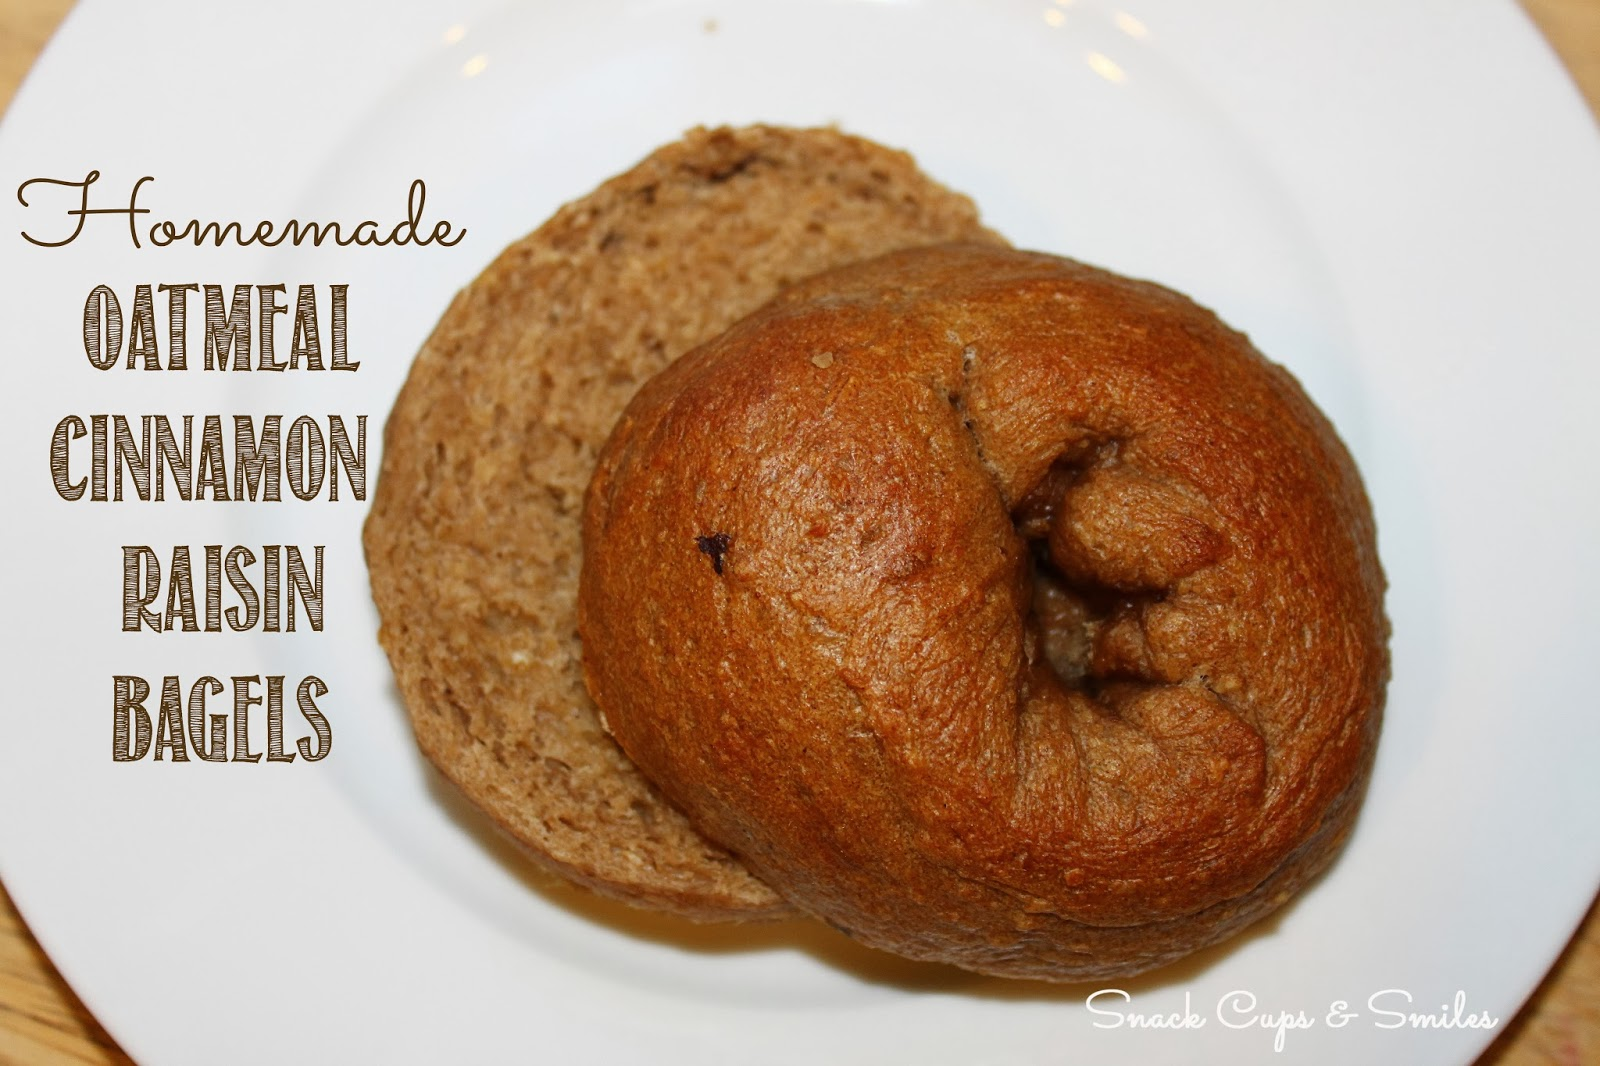 ... oatmeal cinnamon raisin bagels #recipes #bagels #oatmealbagels